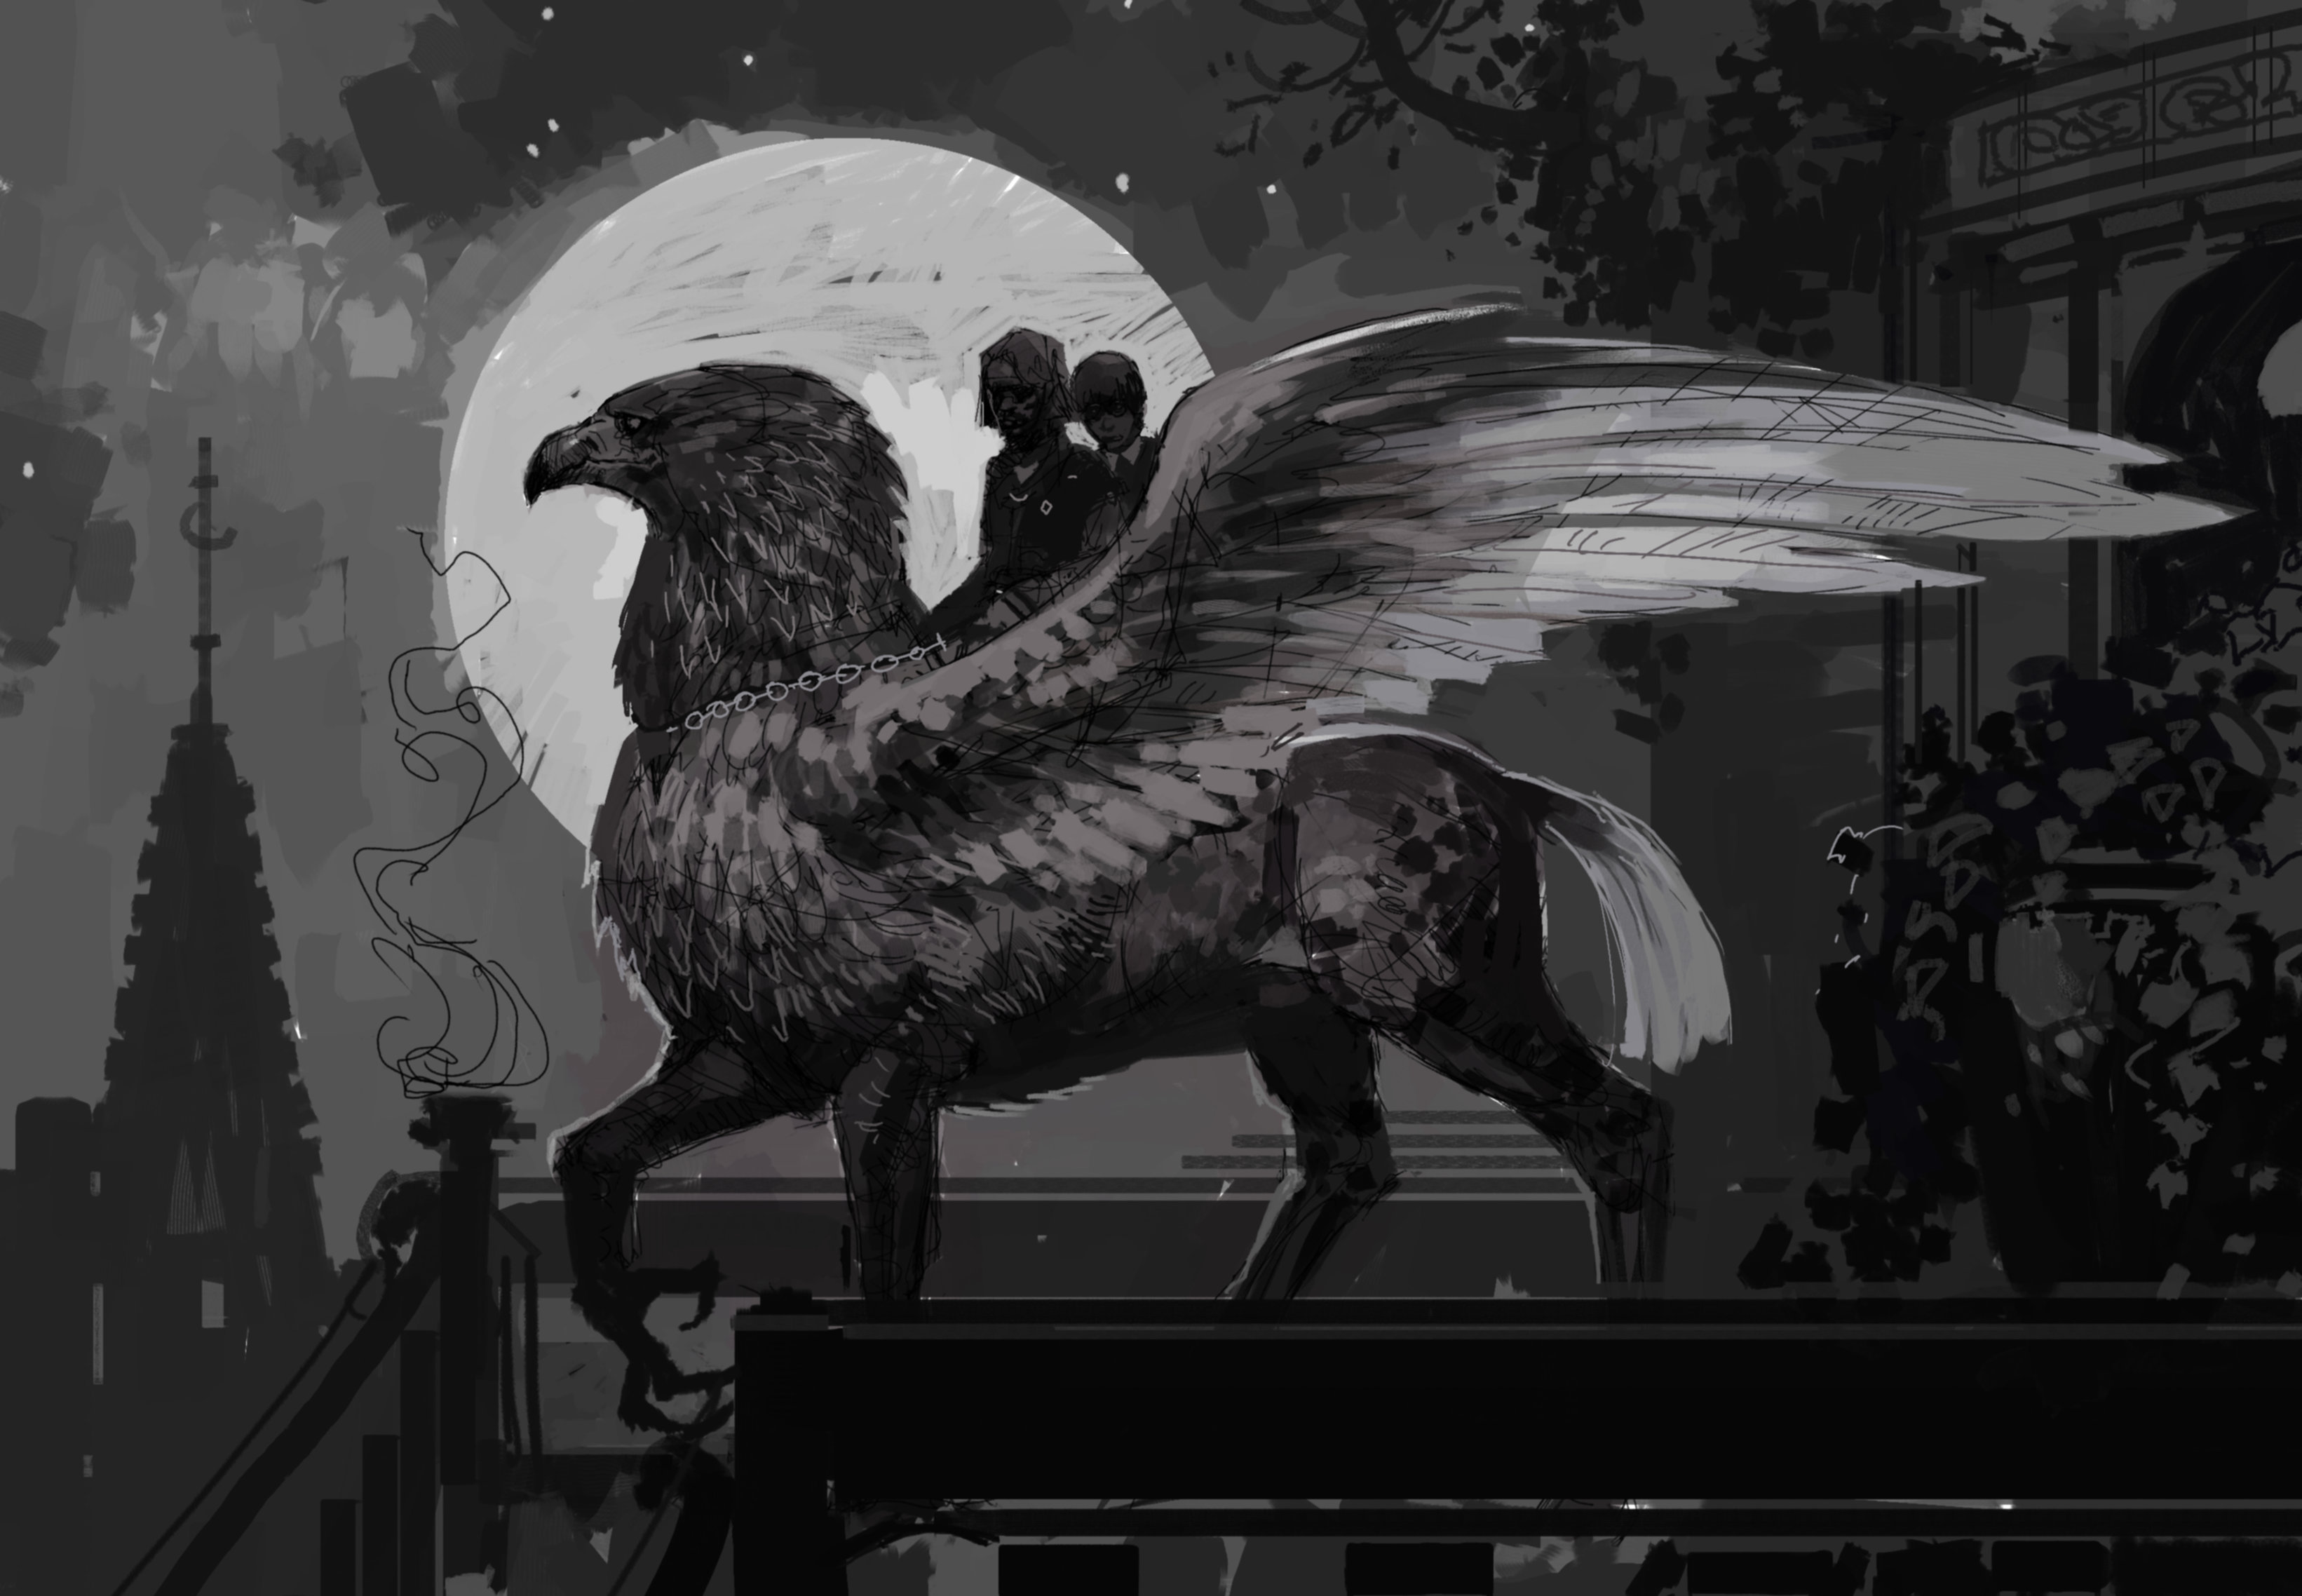 An illustration of Sirius and Harry on Buckebeak